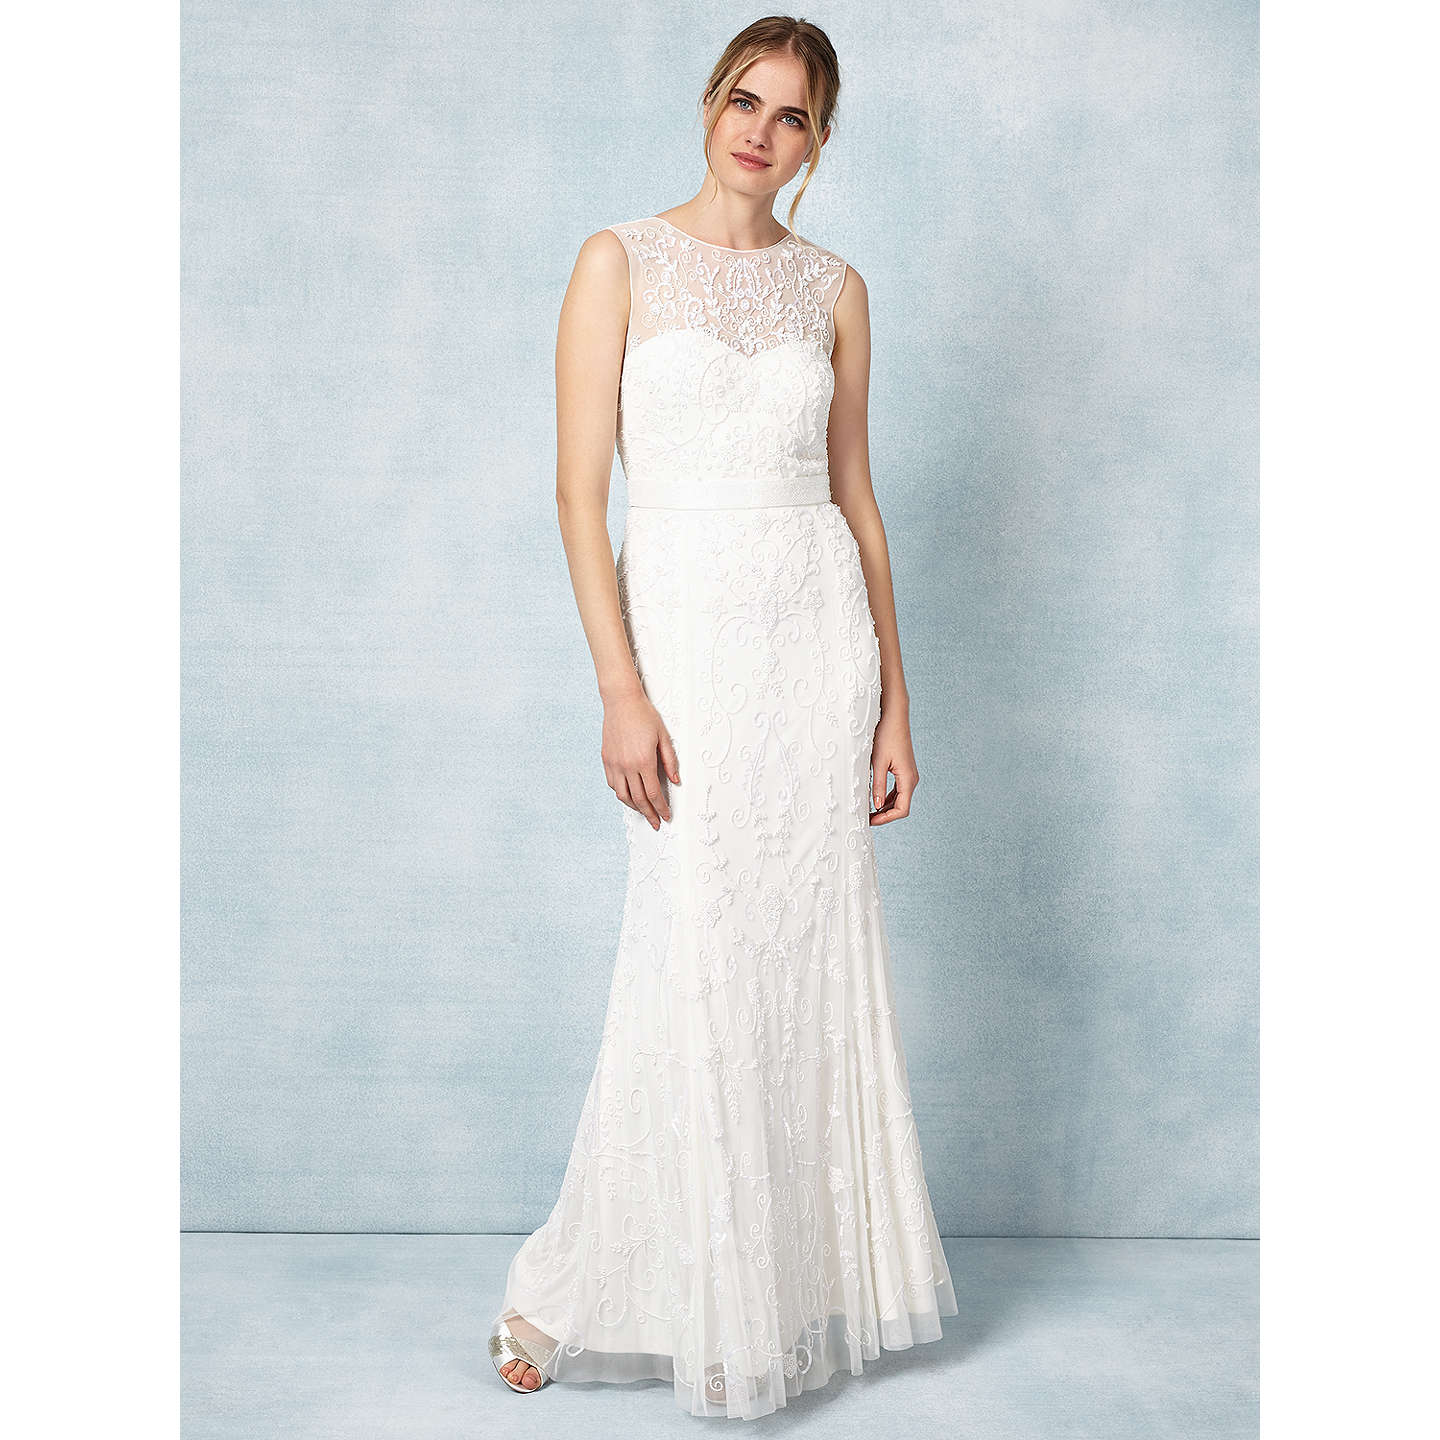 Old Fashioned Monsoon Sale Wedding Dresses Composition - Wedding ...